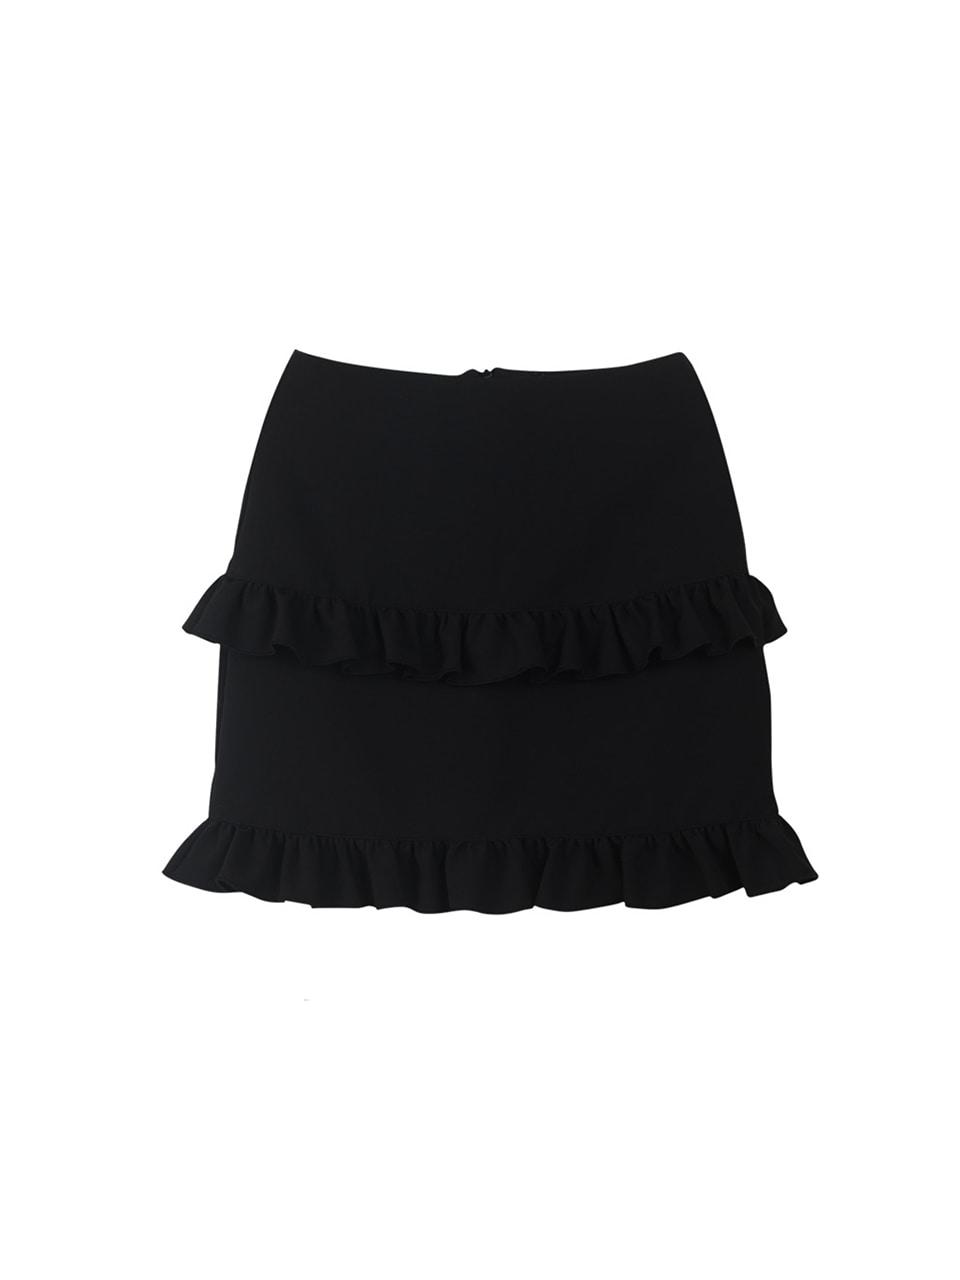 double frill skirt_black